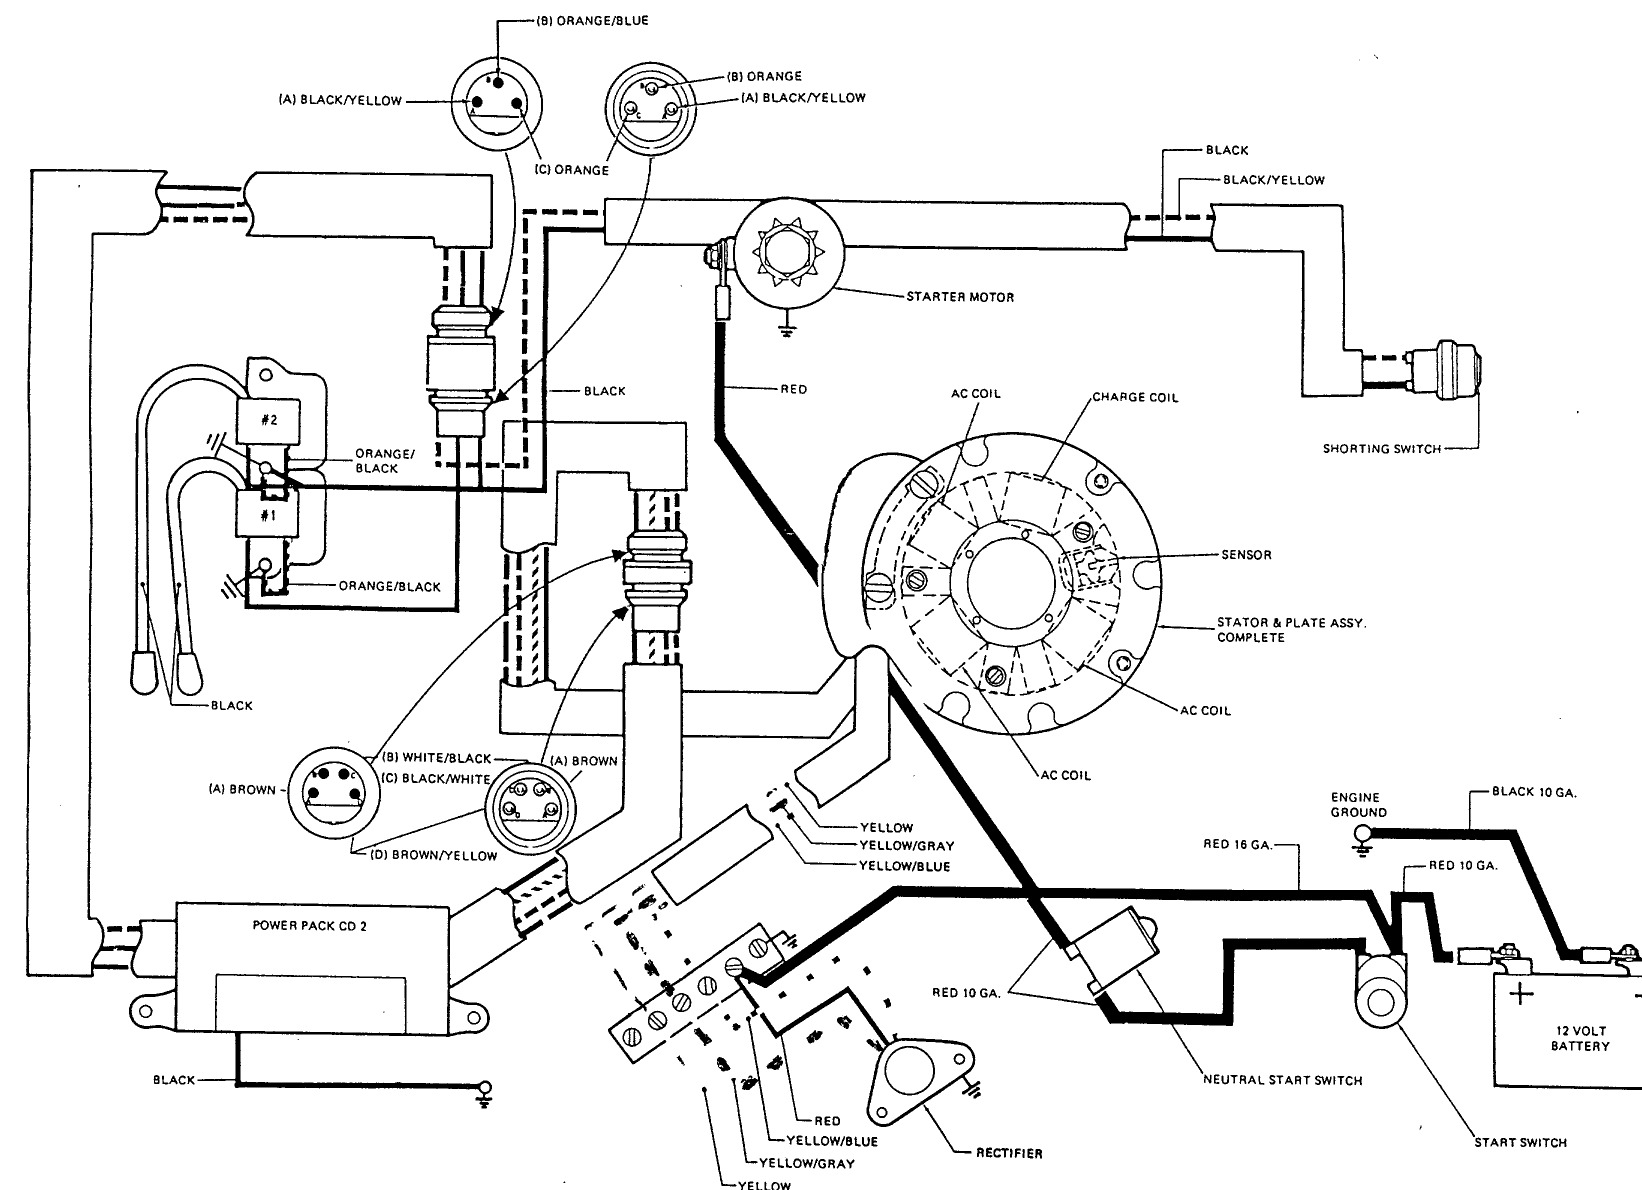 electrical diagram electric maintaining johnson 9 9 troubleshooting mercury 9.9 4 stroke wiring diagram at panicattacktreatment.co